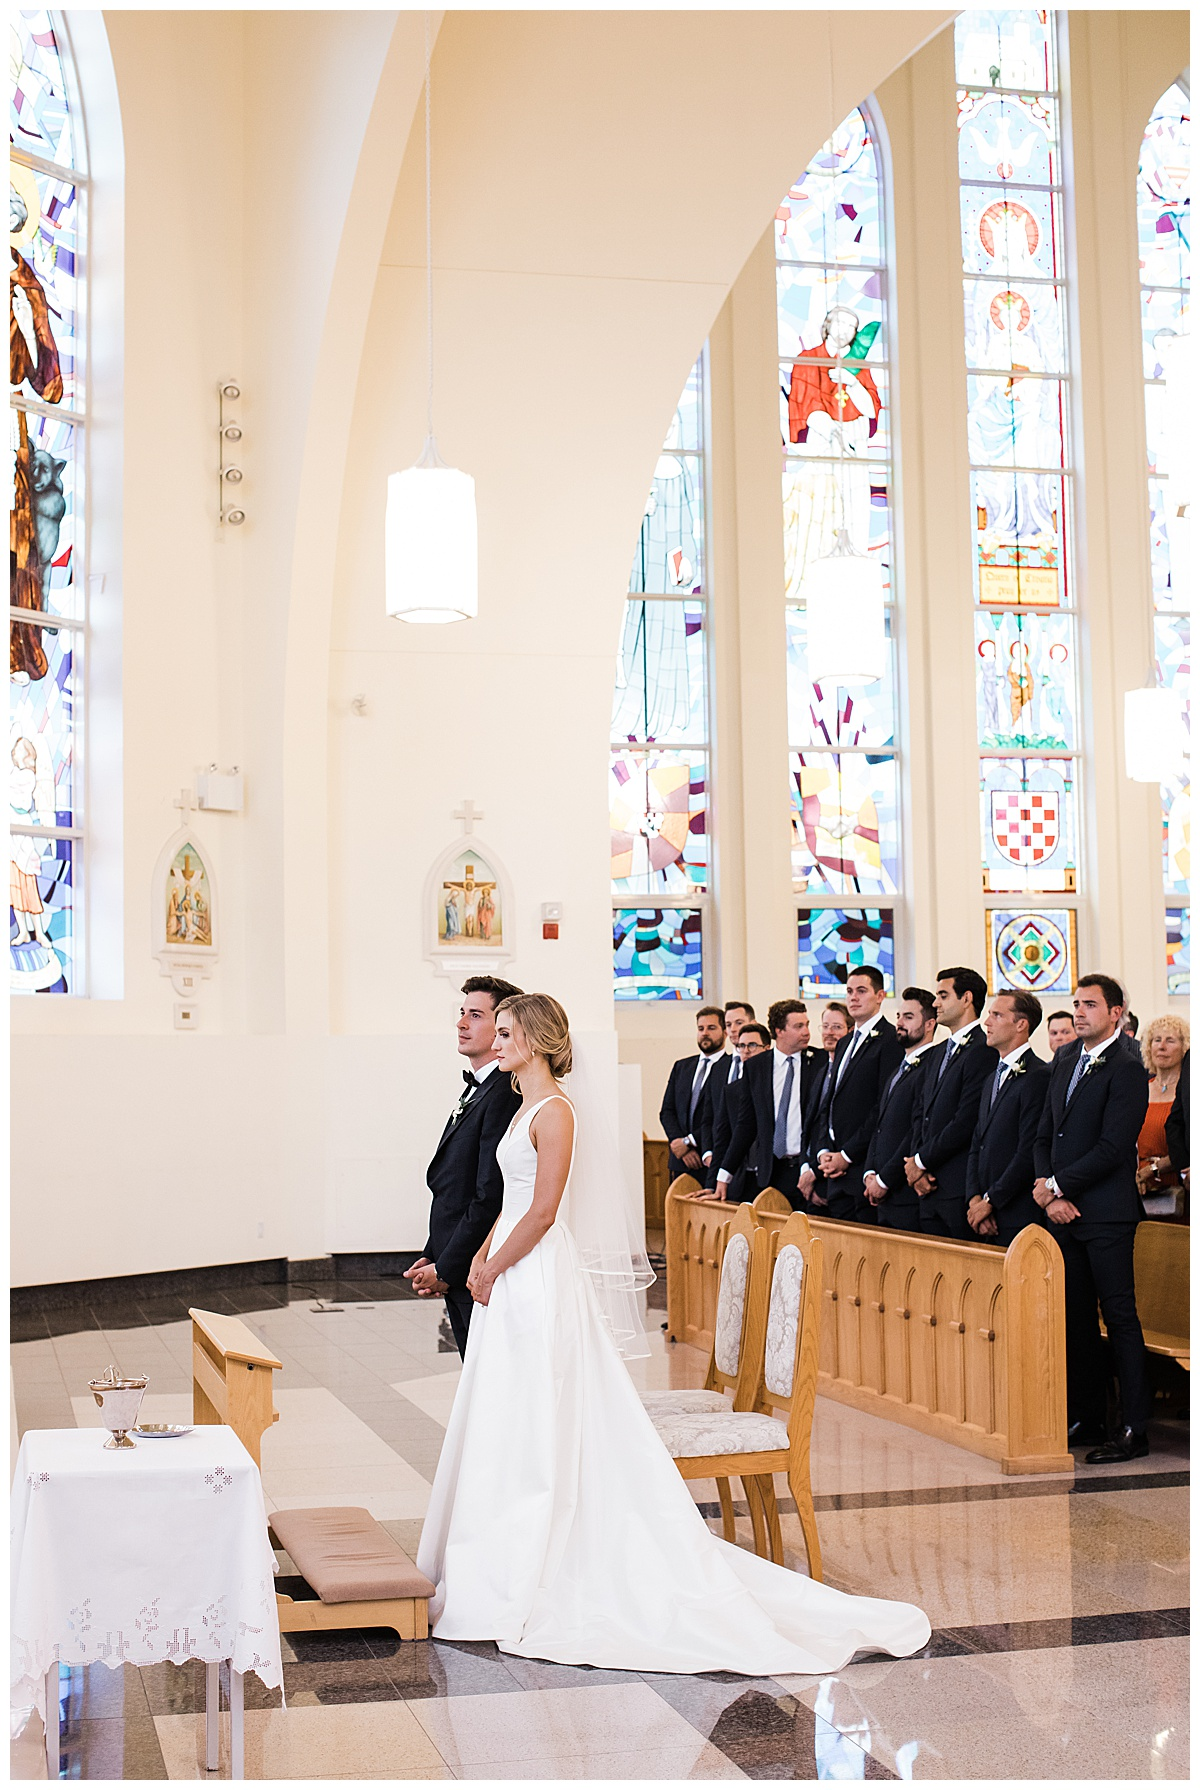 Bride and groom stand at alter  Ontario wedding  Toronto wedding photography  3photography